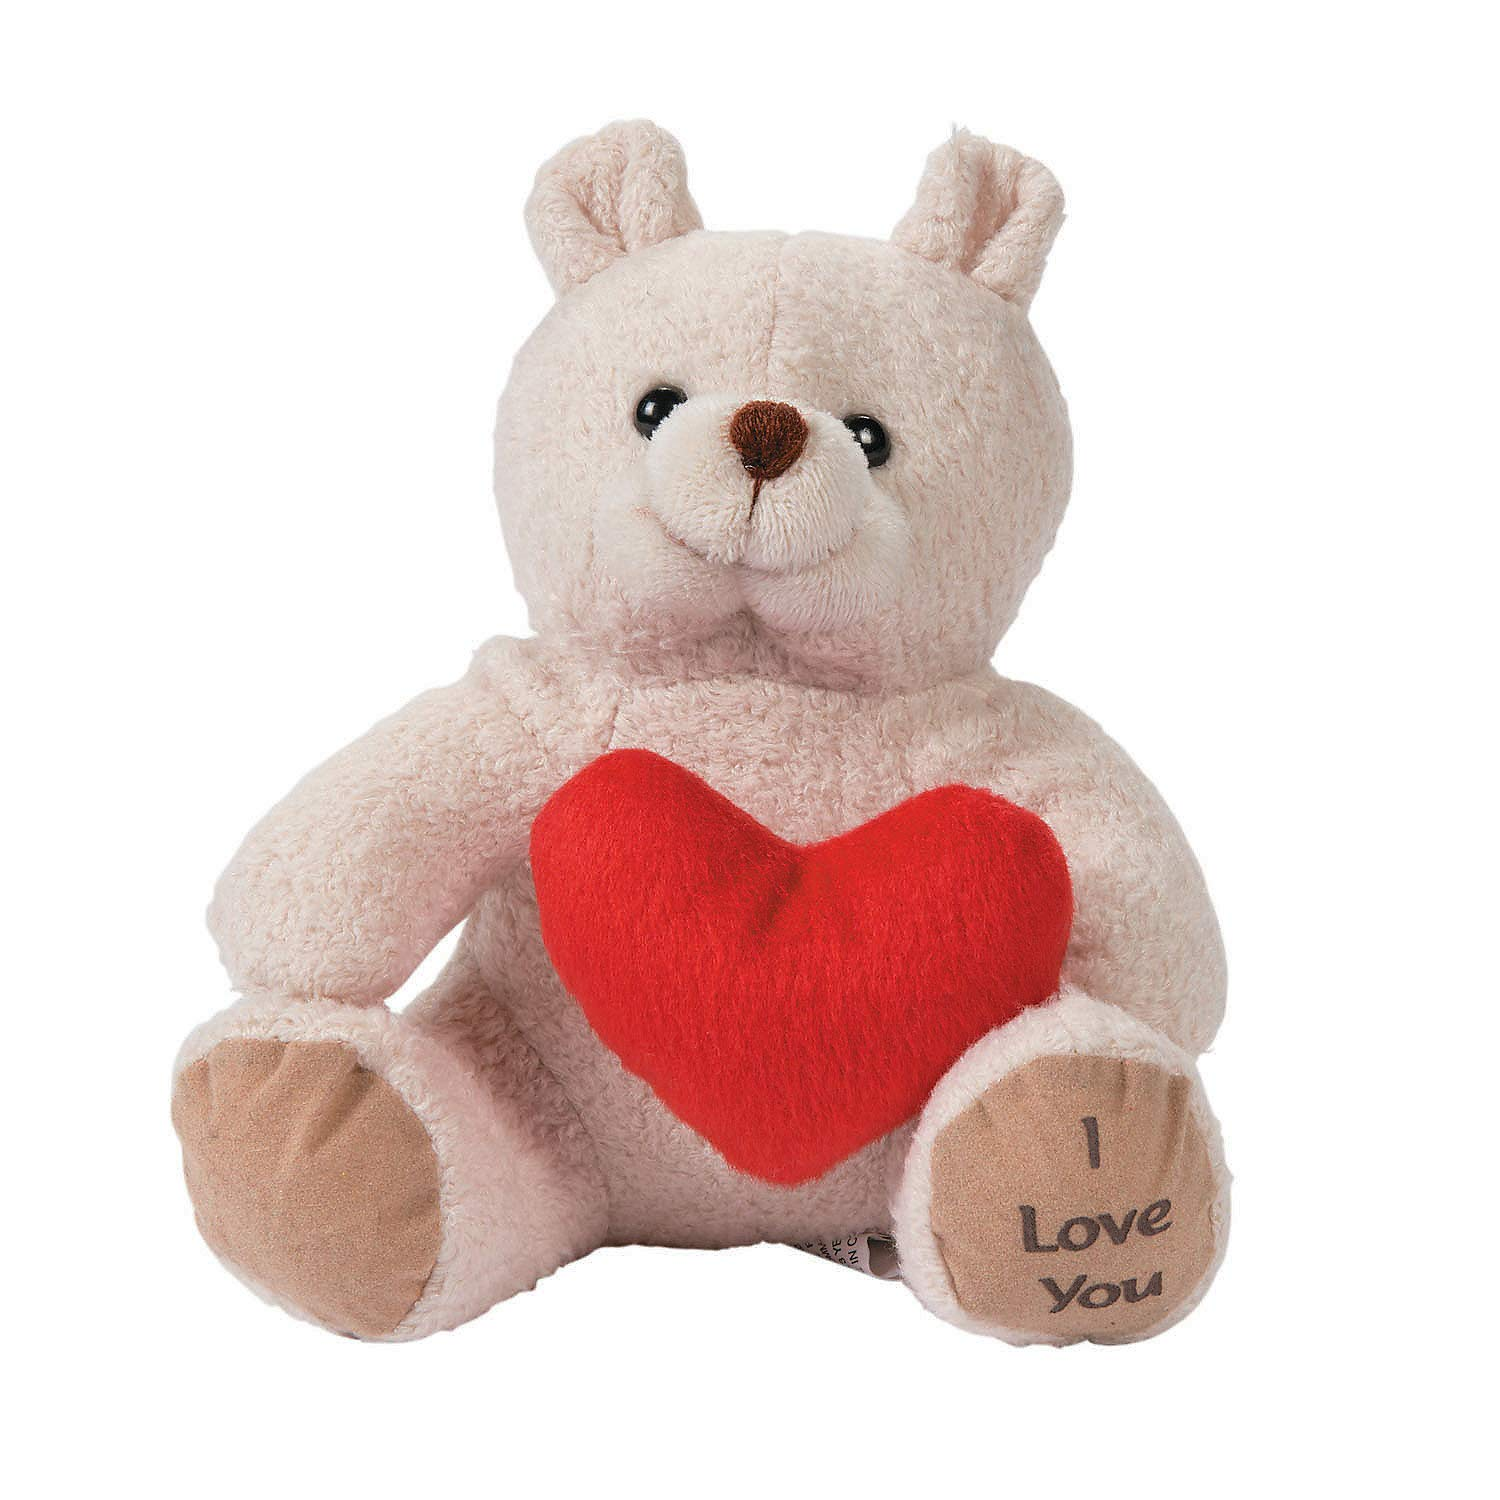 Valentines Day Plush 12 Pieces Oriental Trading Company 32//1600 Toys Stuffed Bears Plush Bears /& Heart for Valentines Day Fun Express